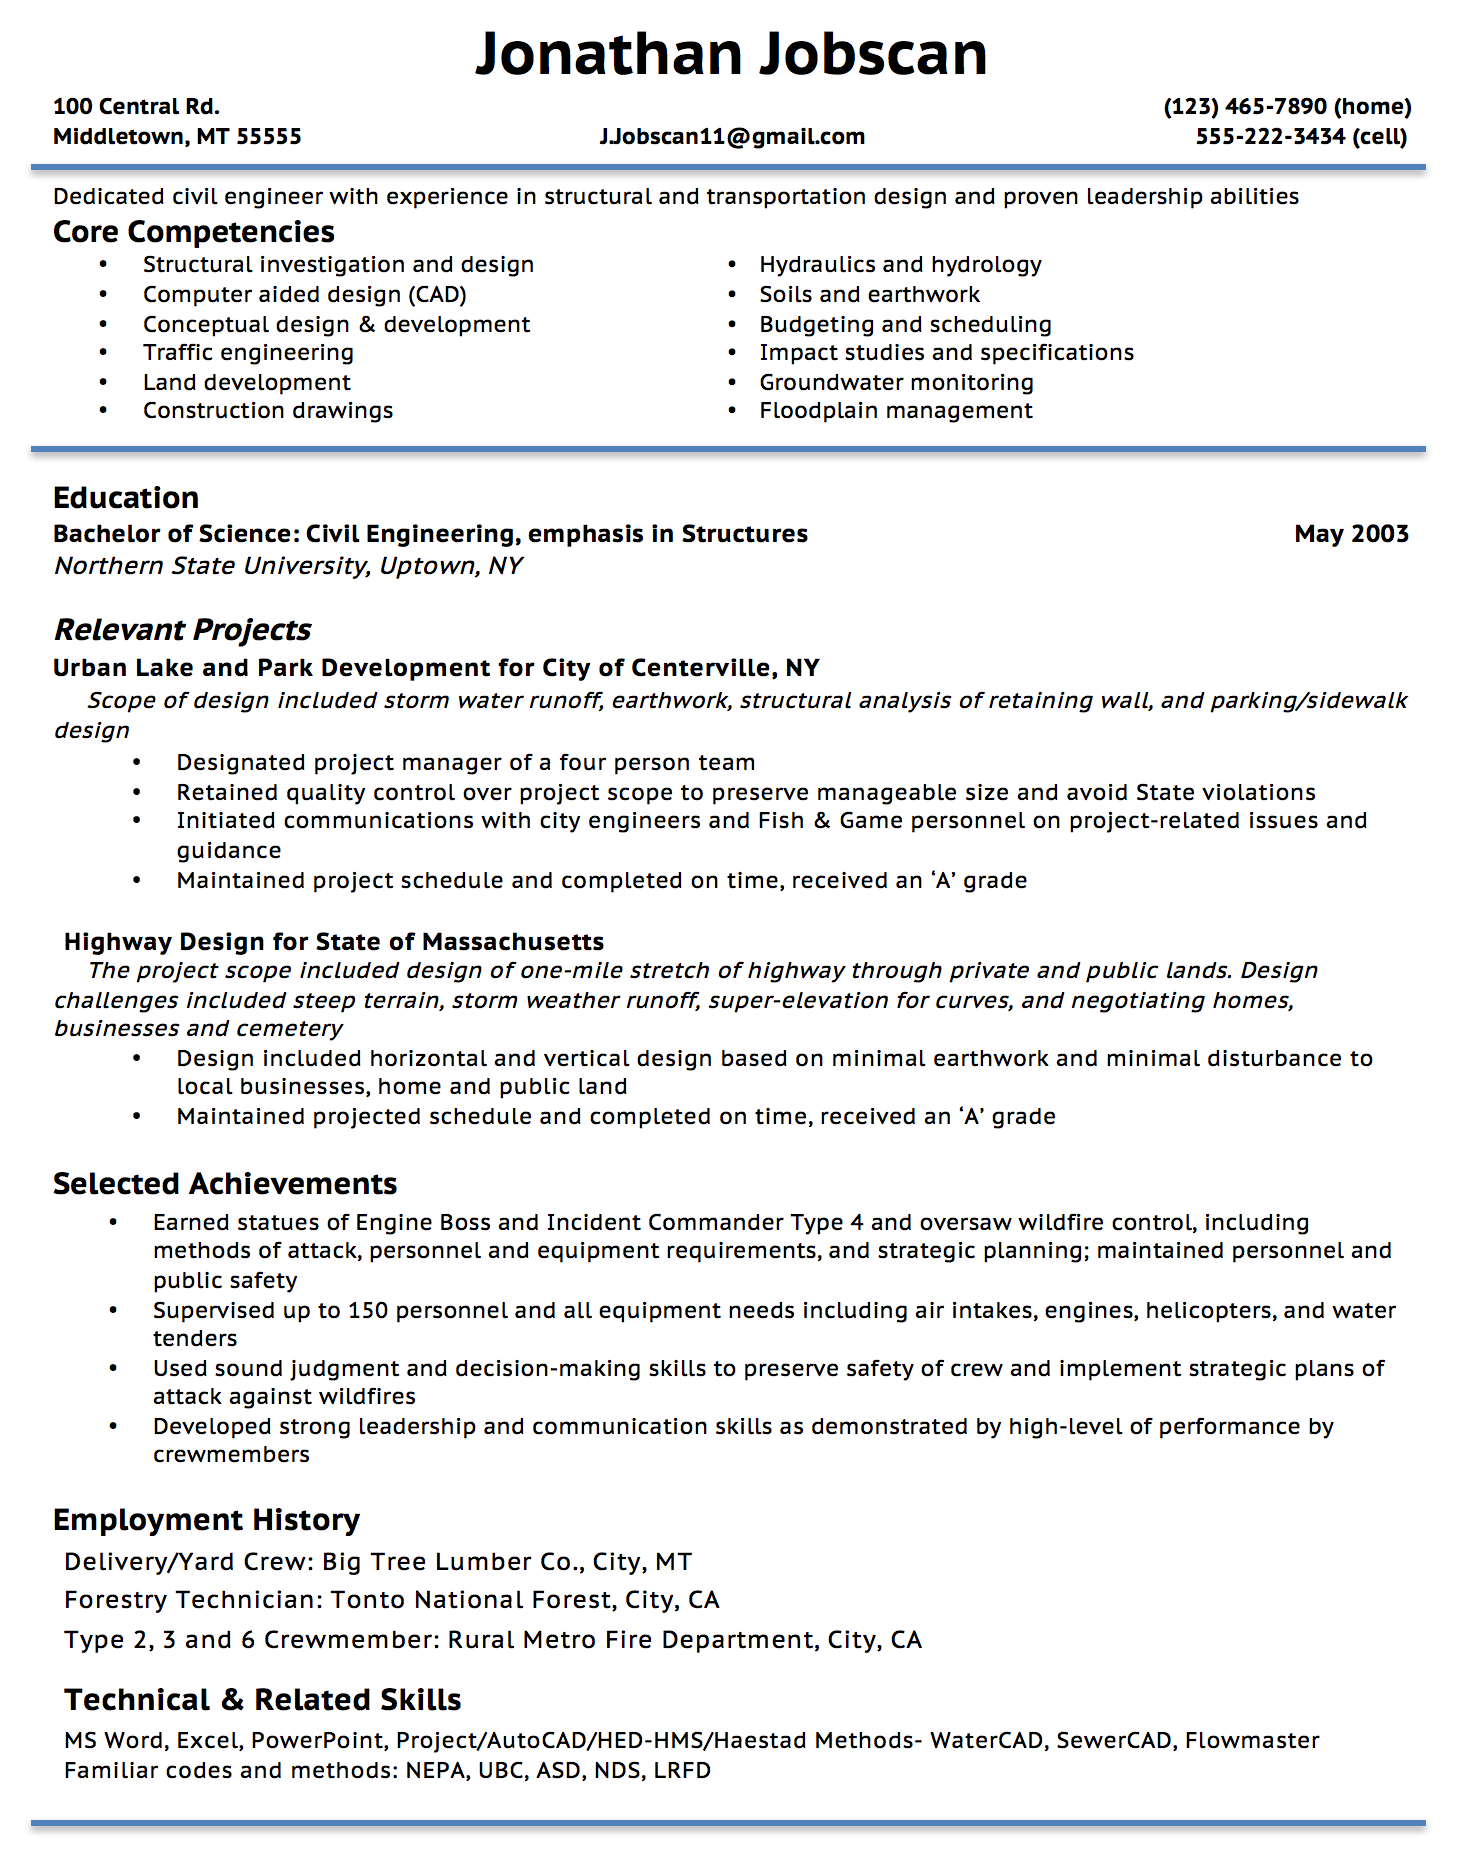 Opposenewapstandardsus  Pretty Resume Writing Guide  Jobscan With Licious Example Of A Functional Resume Format With Astonishing Easy Resume Builder Also Rn Resume Sample In Addition Keywords For Resumes And Indesign Resume Template As Well As Stay At Home Mom Resume Additionally Phlebotomy Resume From Jobscanco With Opposenewapstandardsus  Licious Resume Writing Guide  Jobscan With Astonishing Example Of A Functional Resume Format And Pretty Easy Resume Builder Also Rn Resume Sample In Addition Keywords For Resumes From Jobscanco